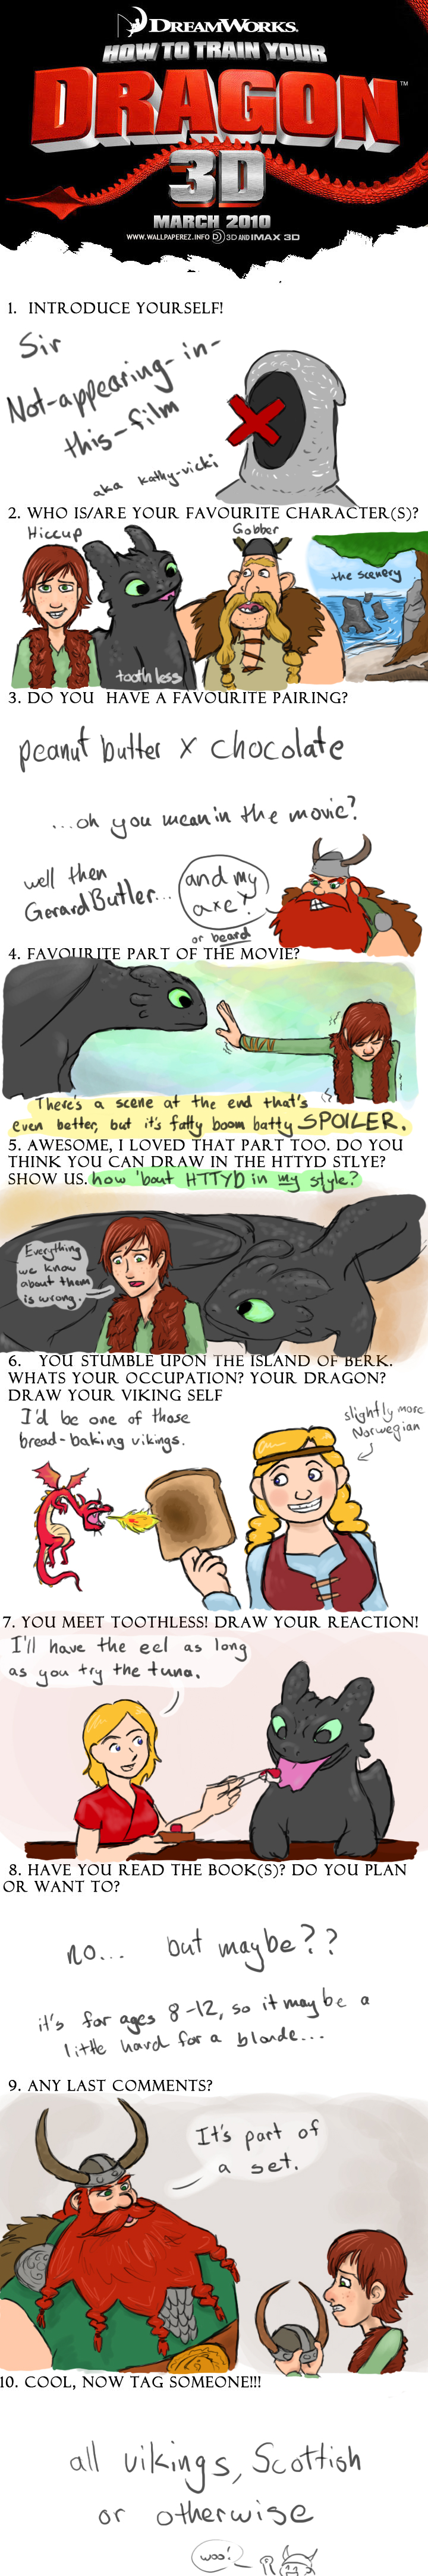 How to Train Your Dragon Meme by kathy-vicki